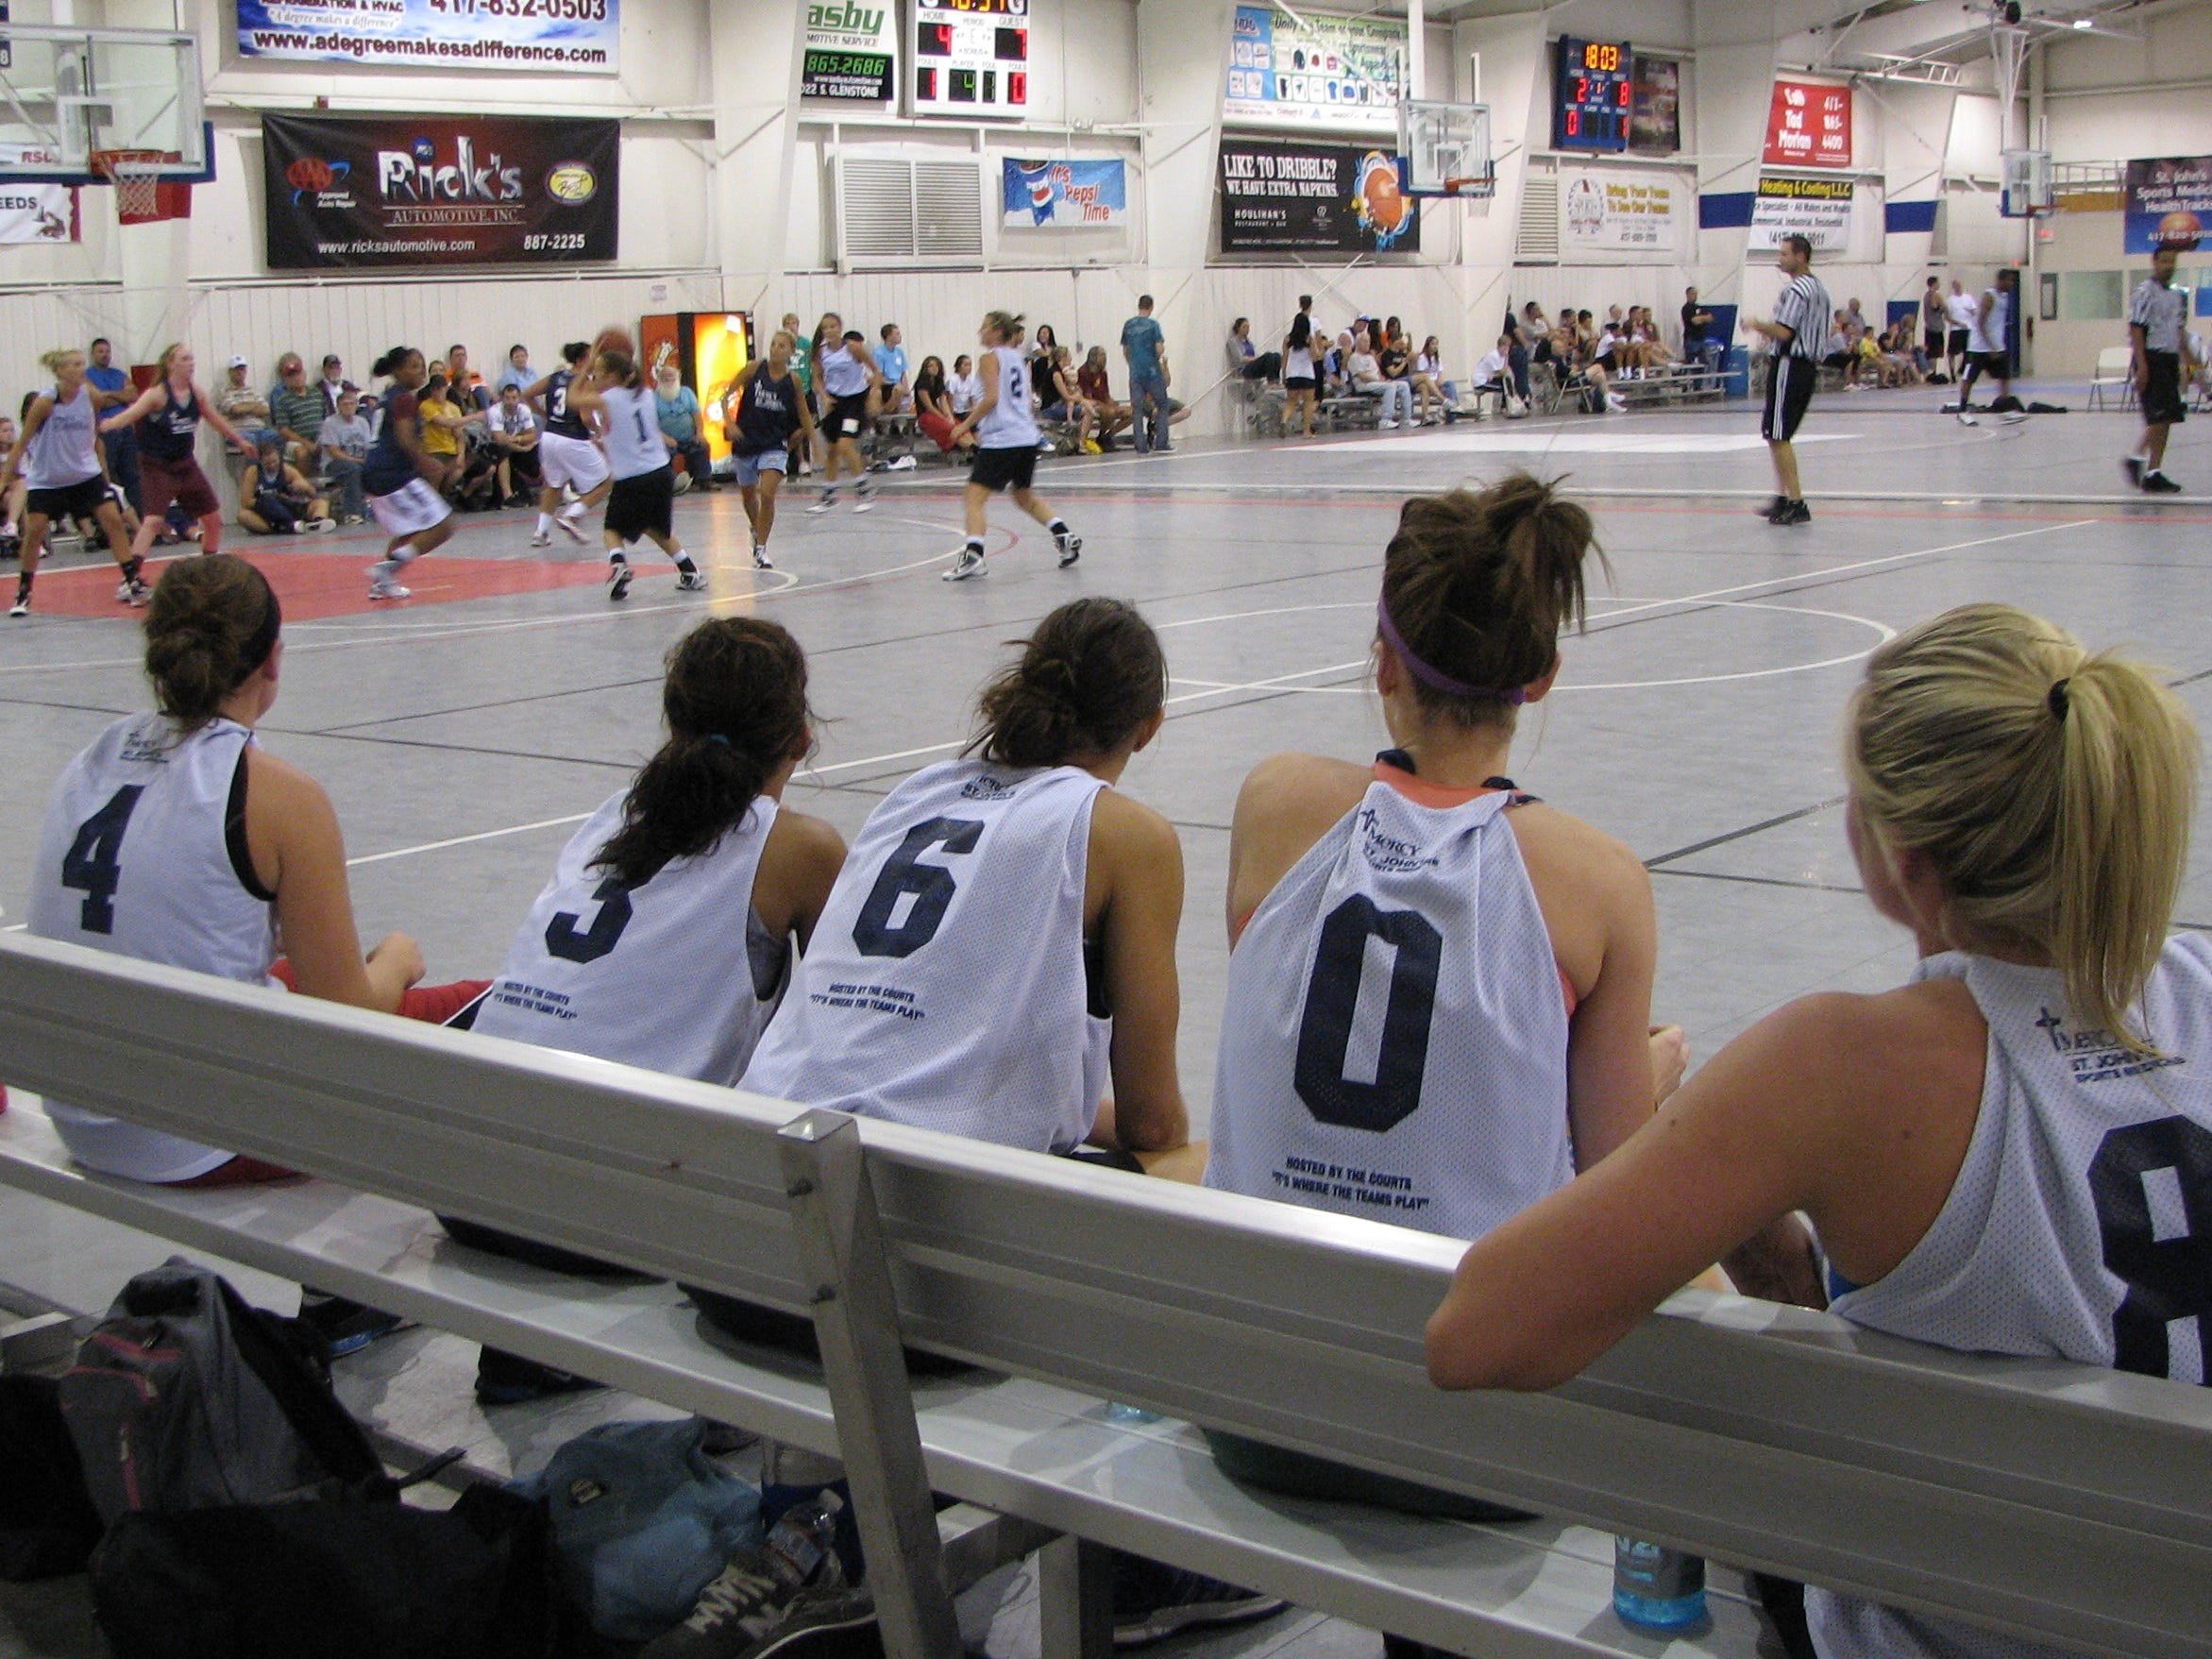 Members of the Drury Lady Panthers watch their teammates take on another team during a game at The Courts Summer Pro-Am League on Wednesday, June 30, 2010.